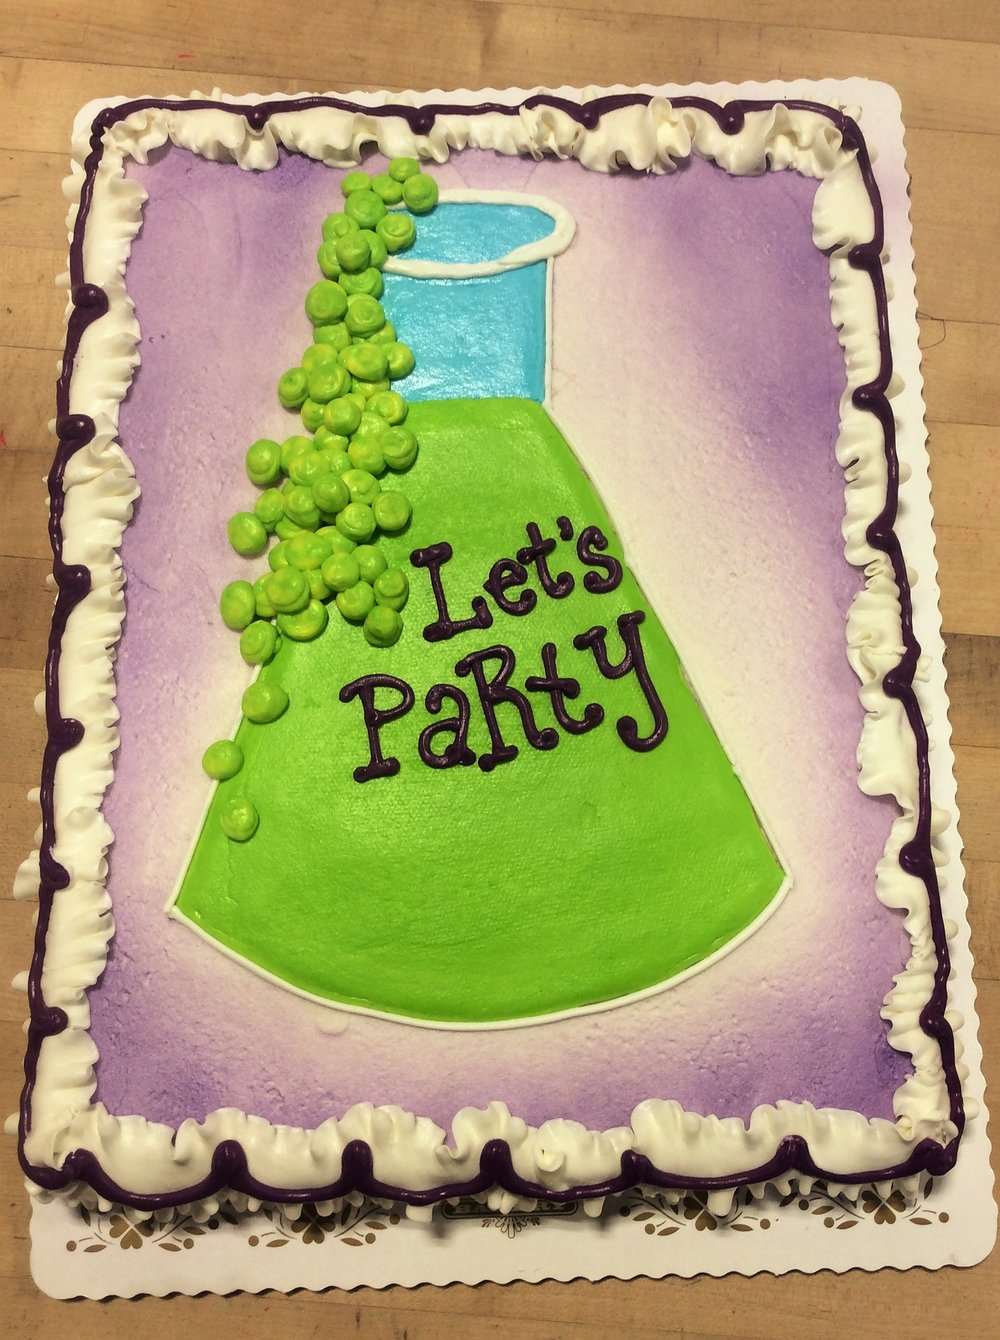 Science Party Sheet Cake with Laboratory Flask